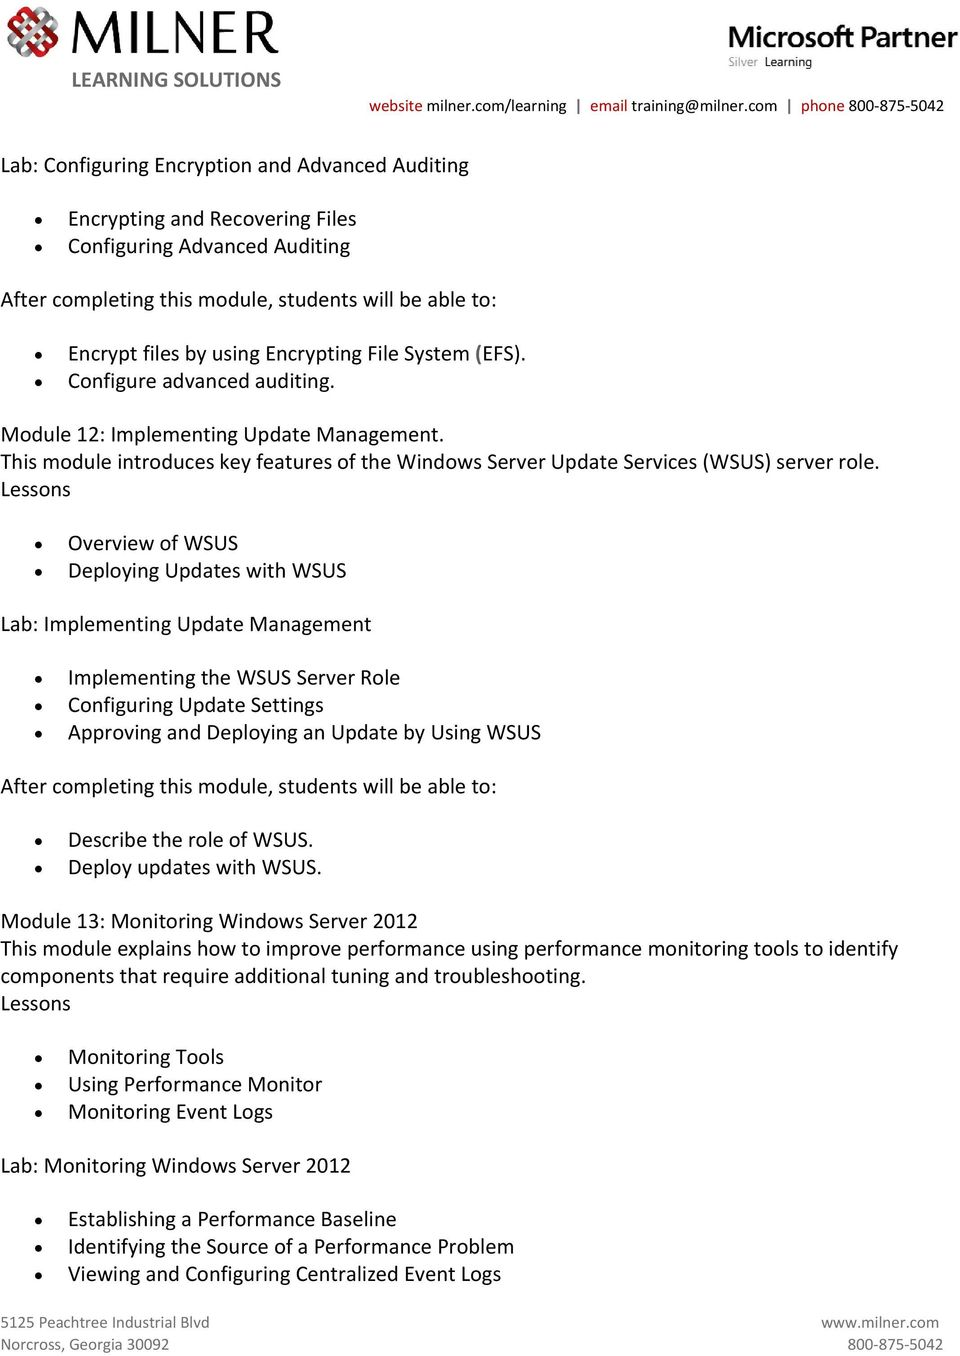 Overview of WSUS Deploying Updates with WSUS Lab: Implementing Update Management Implementing the WSUS Server Role Configuring Update Settings Approving and Deploying an Update by Using WSUS Describe